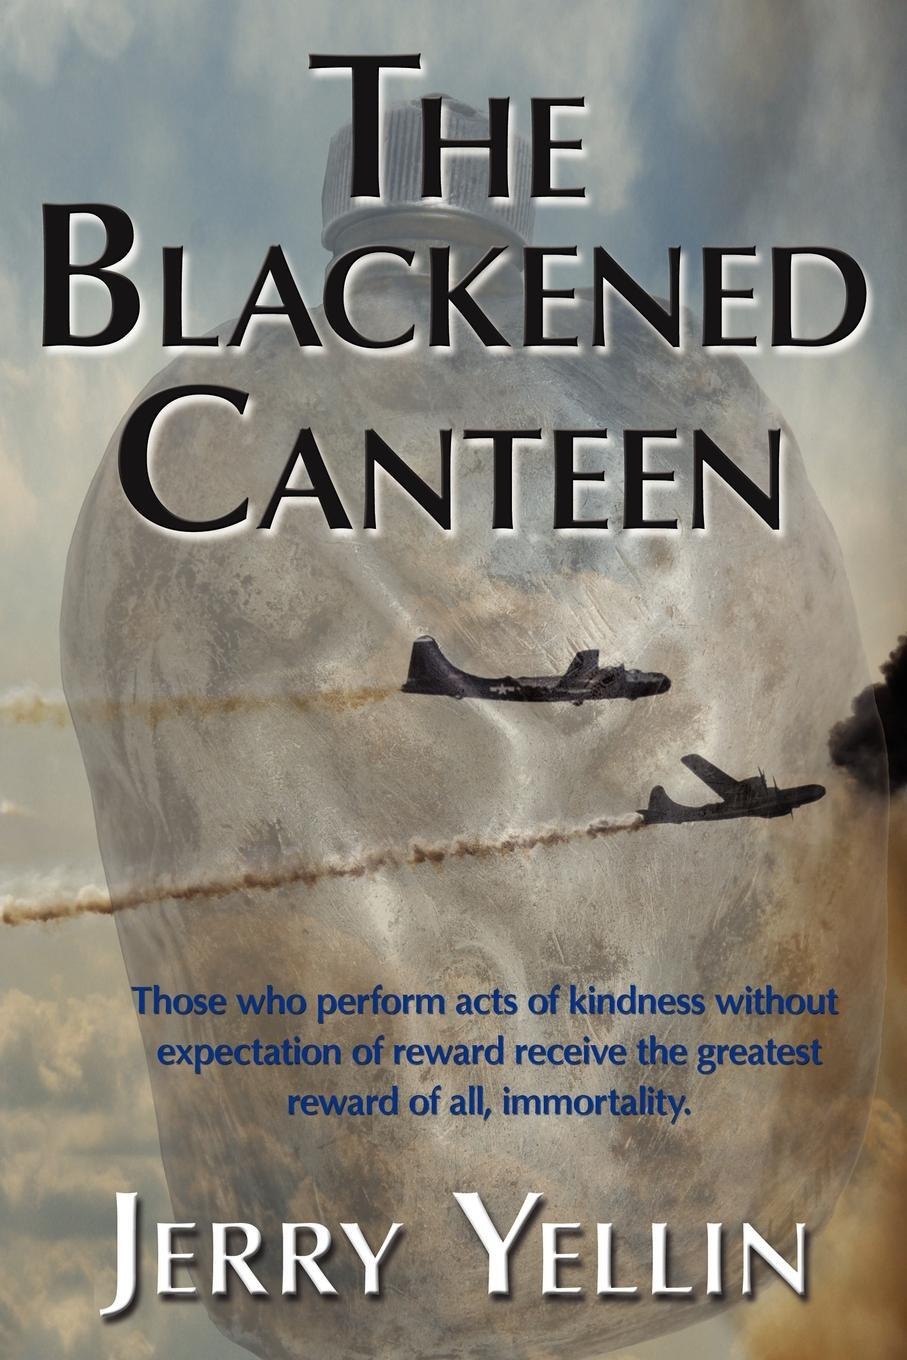 The Blackened Canteen